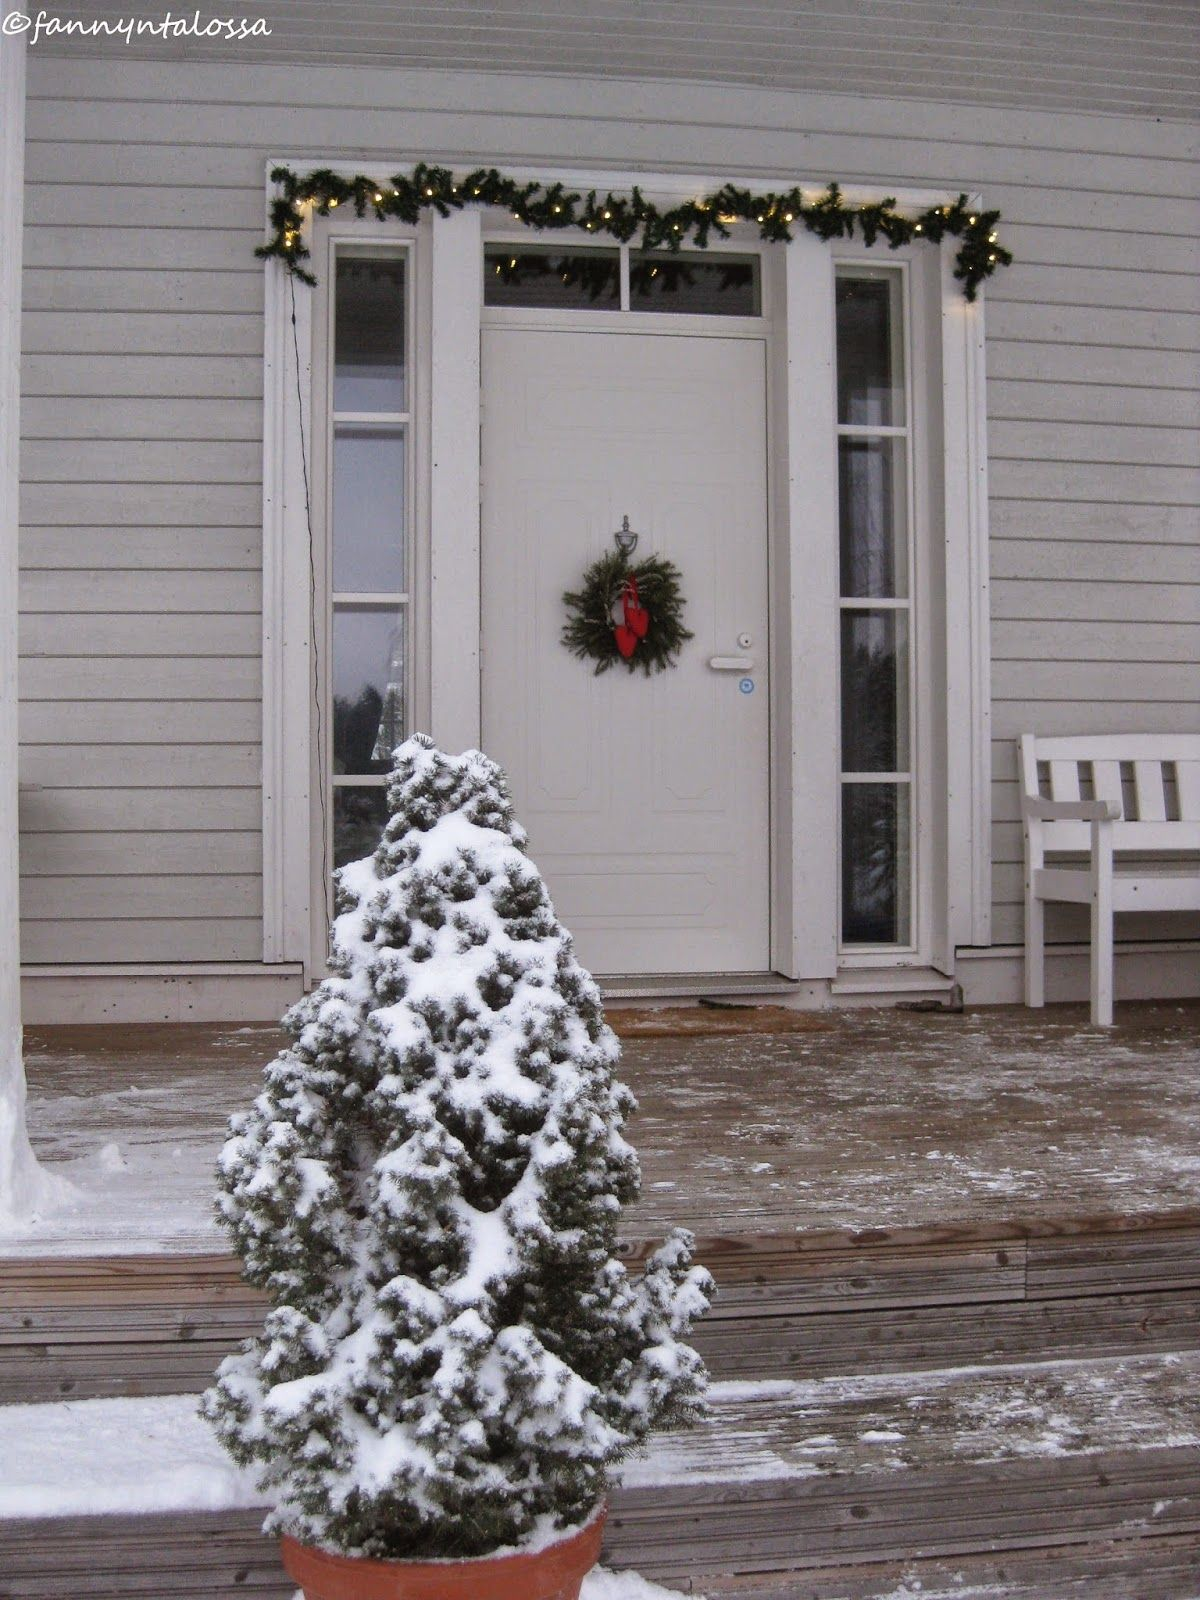 Front door at our country home during Christmas